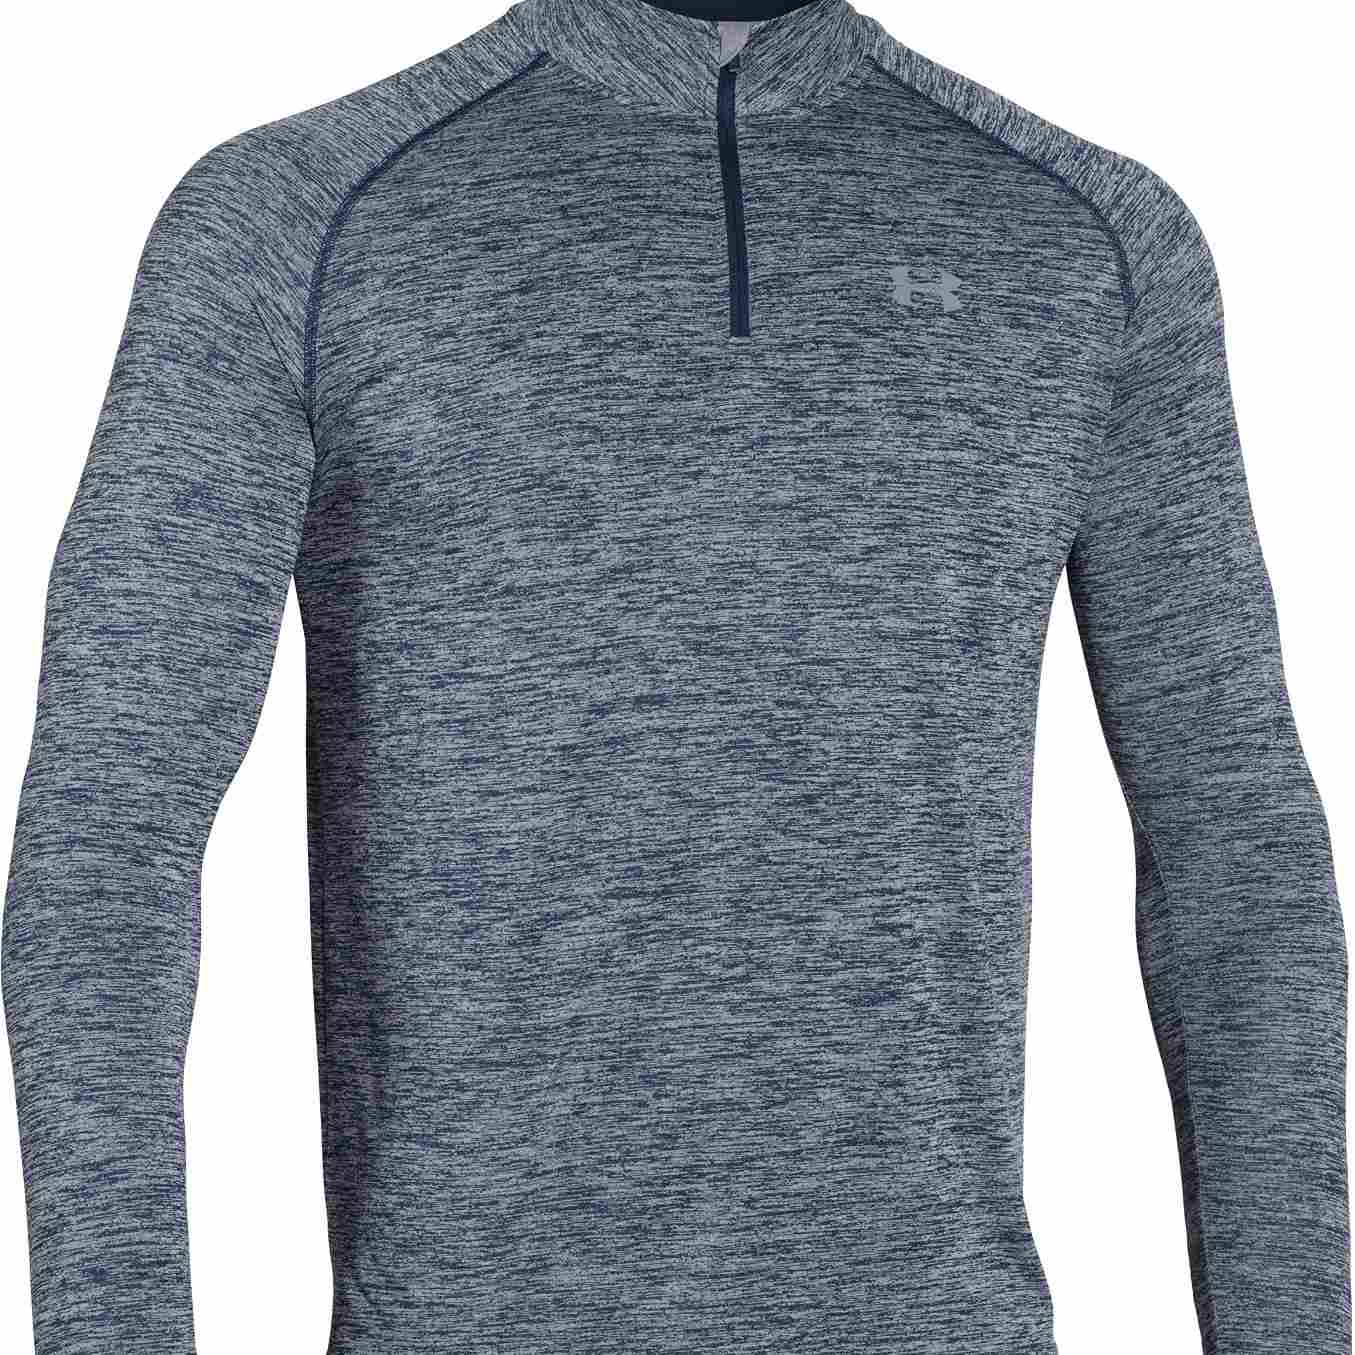 d2e347031b7b The 8 Best Men s Cold Weather Running Clothes for 2019